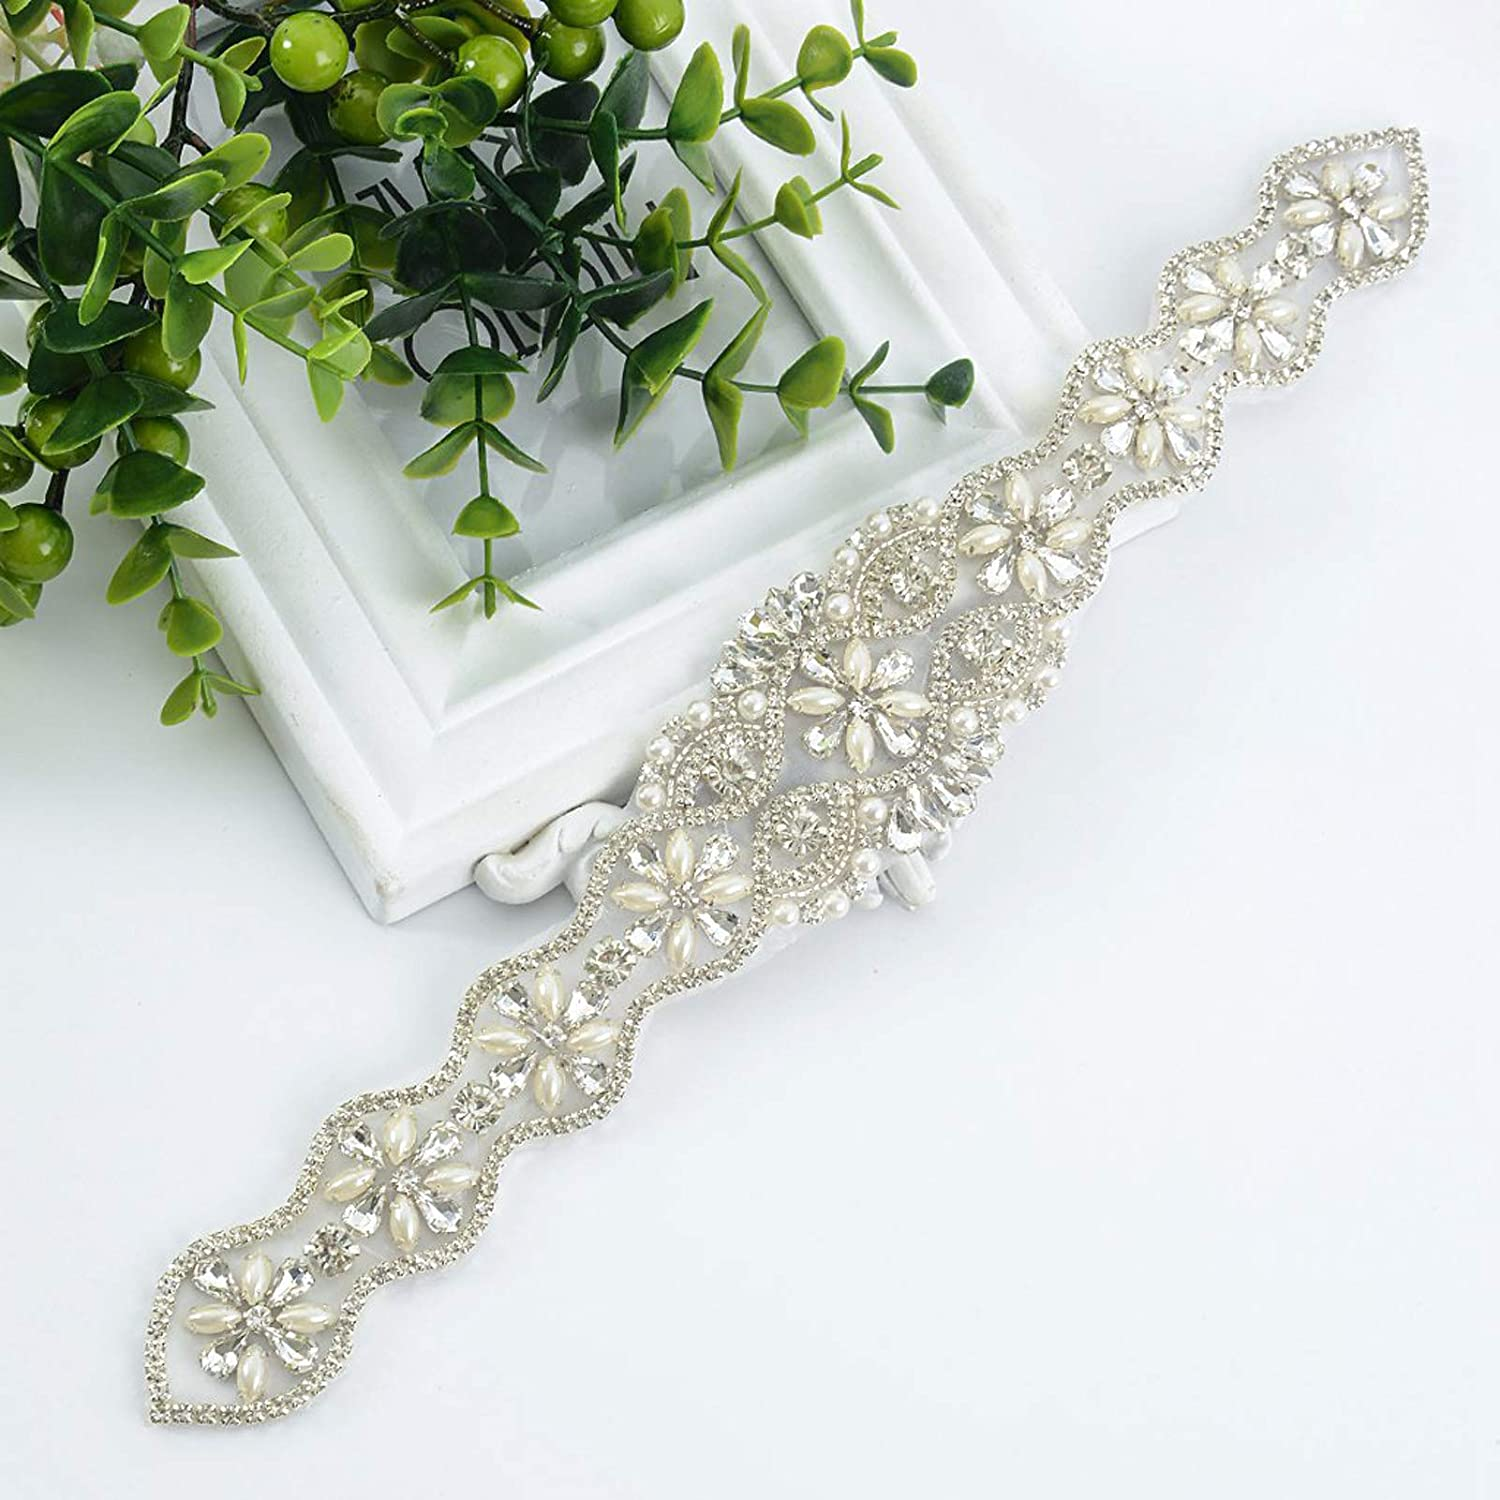 Prettyia 1Yard 30mm Rhinestone Applique Iron on Trim Wedding Belt Sash Dress